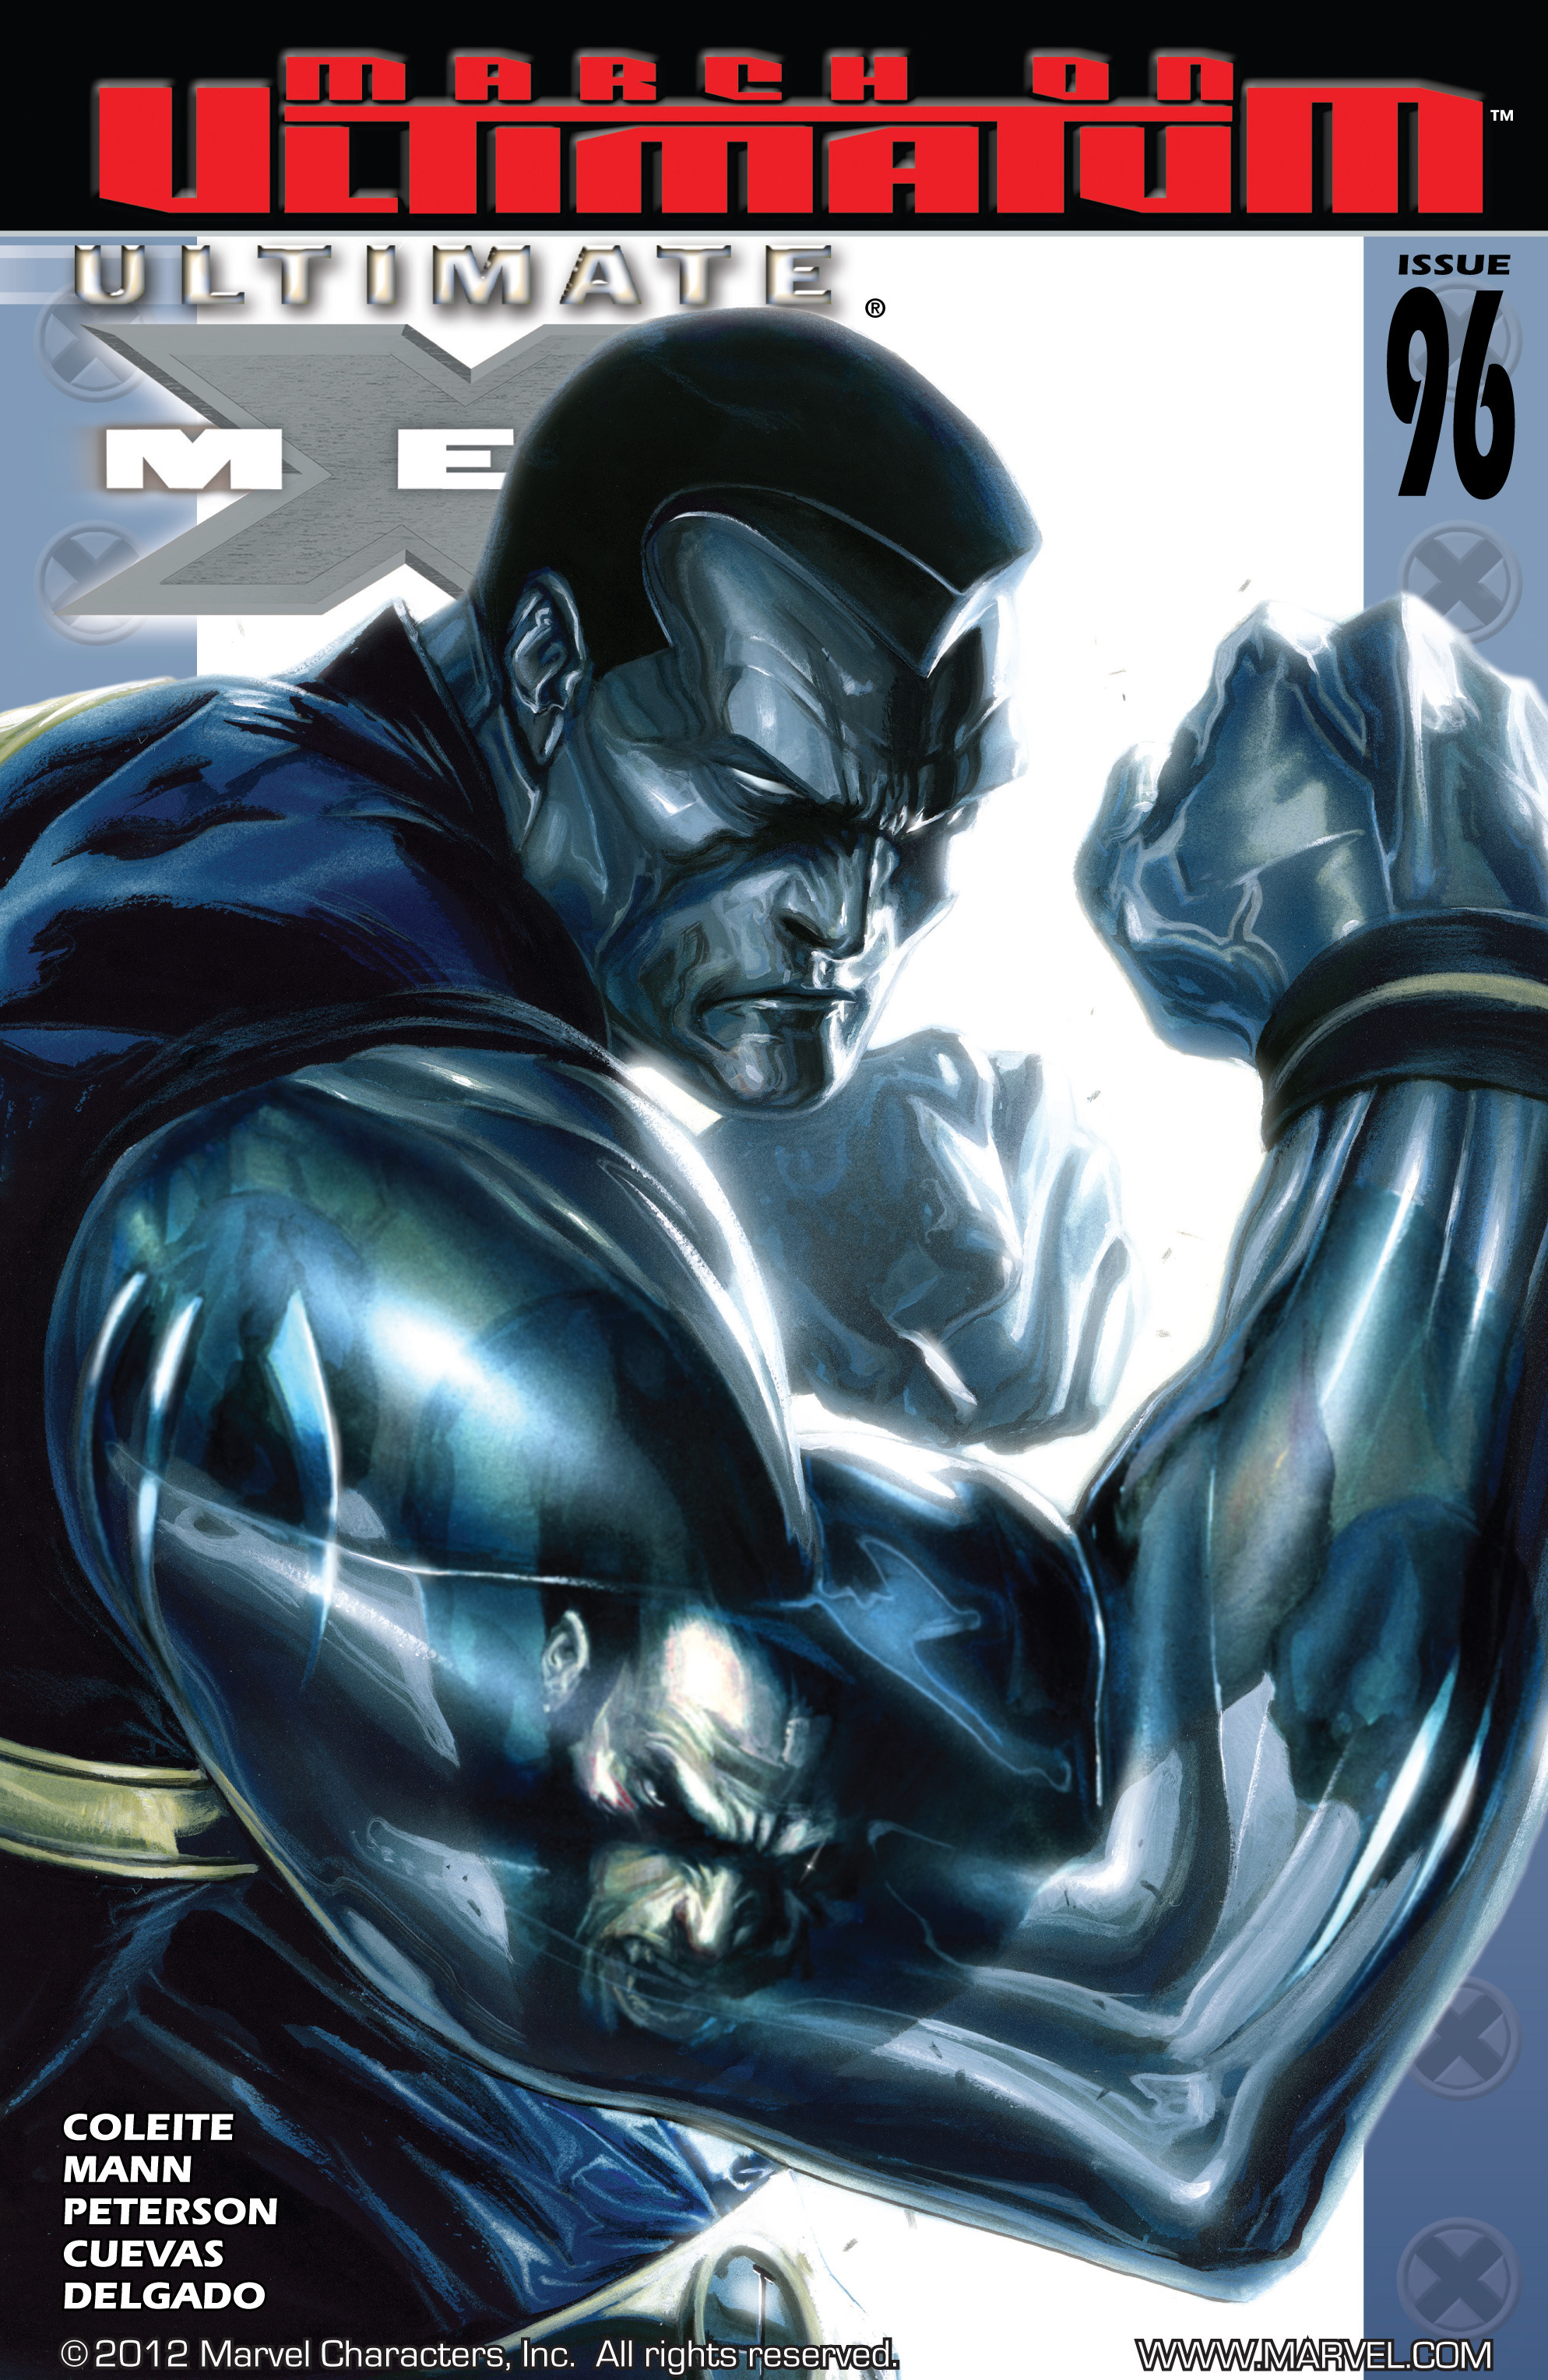 Read online Ultimate X-Men comic -  Issue #96 - 1